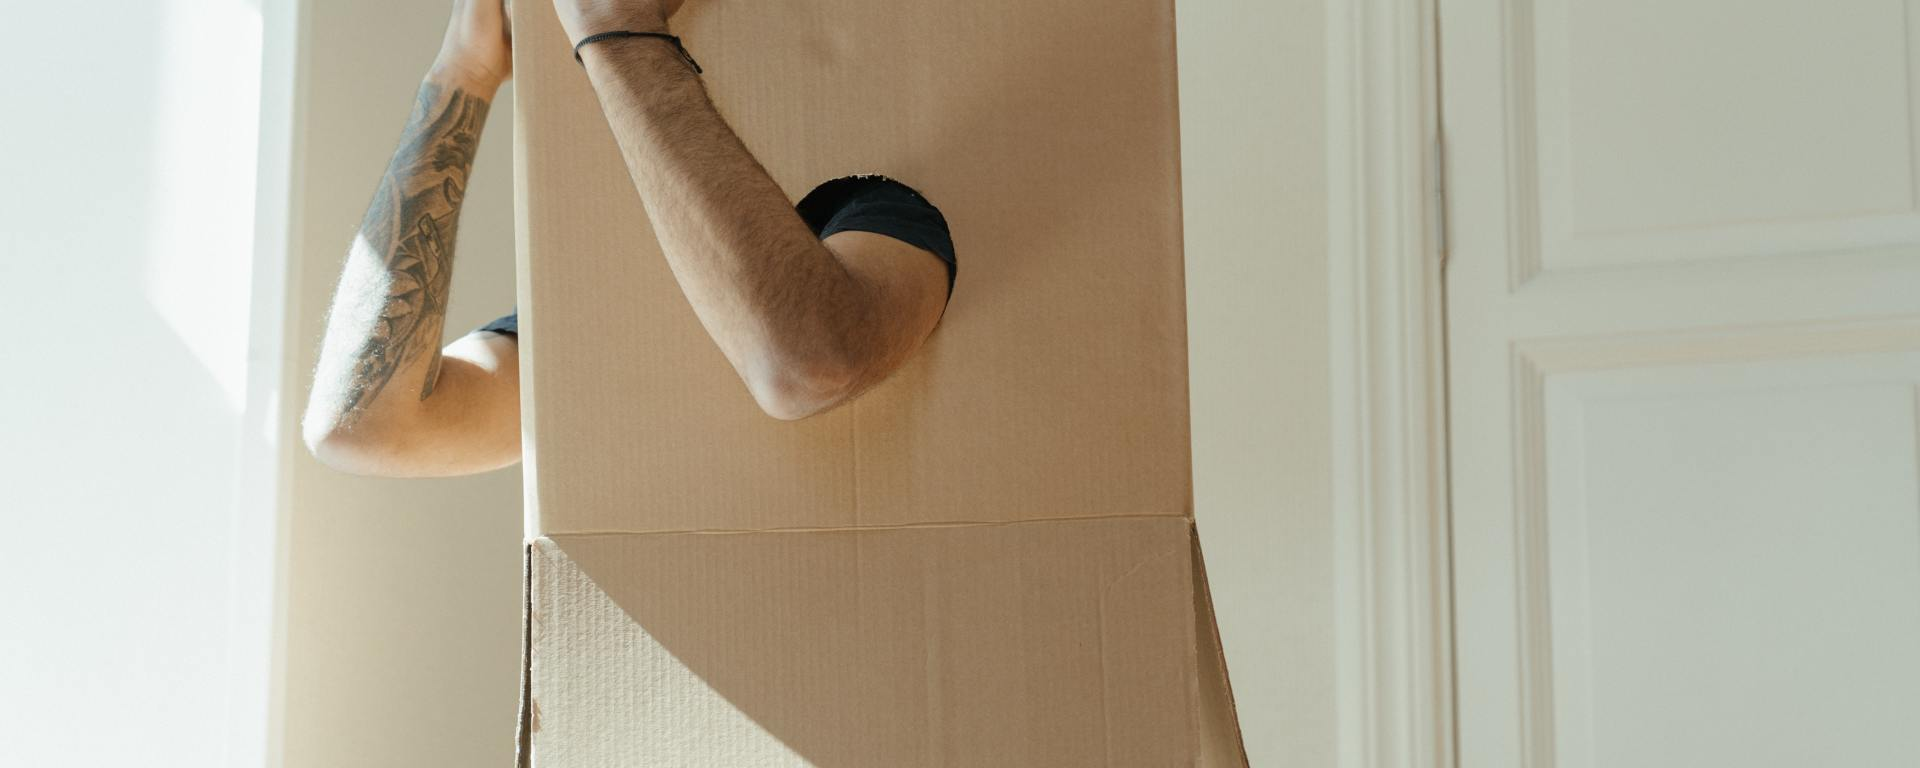 An image of a person in a box, with their face not showing but their arms out.